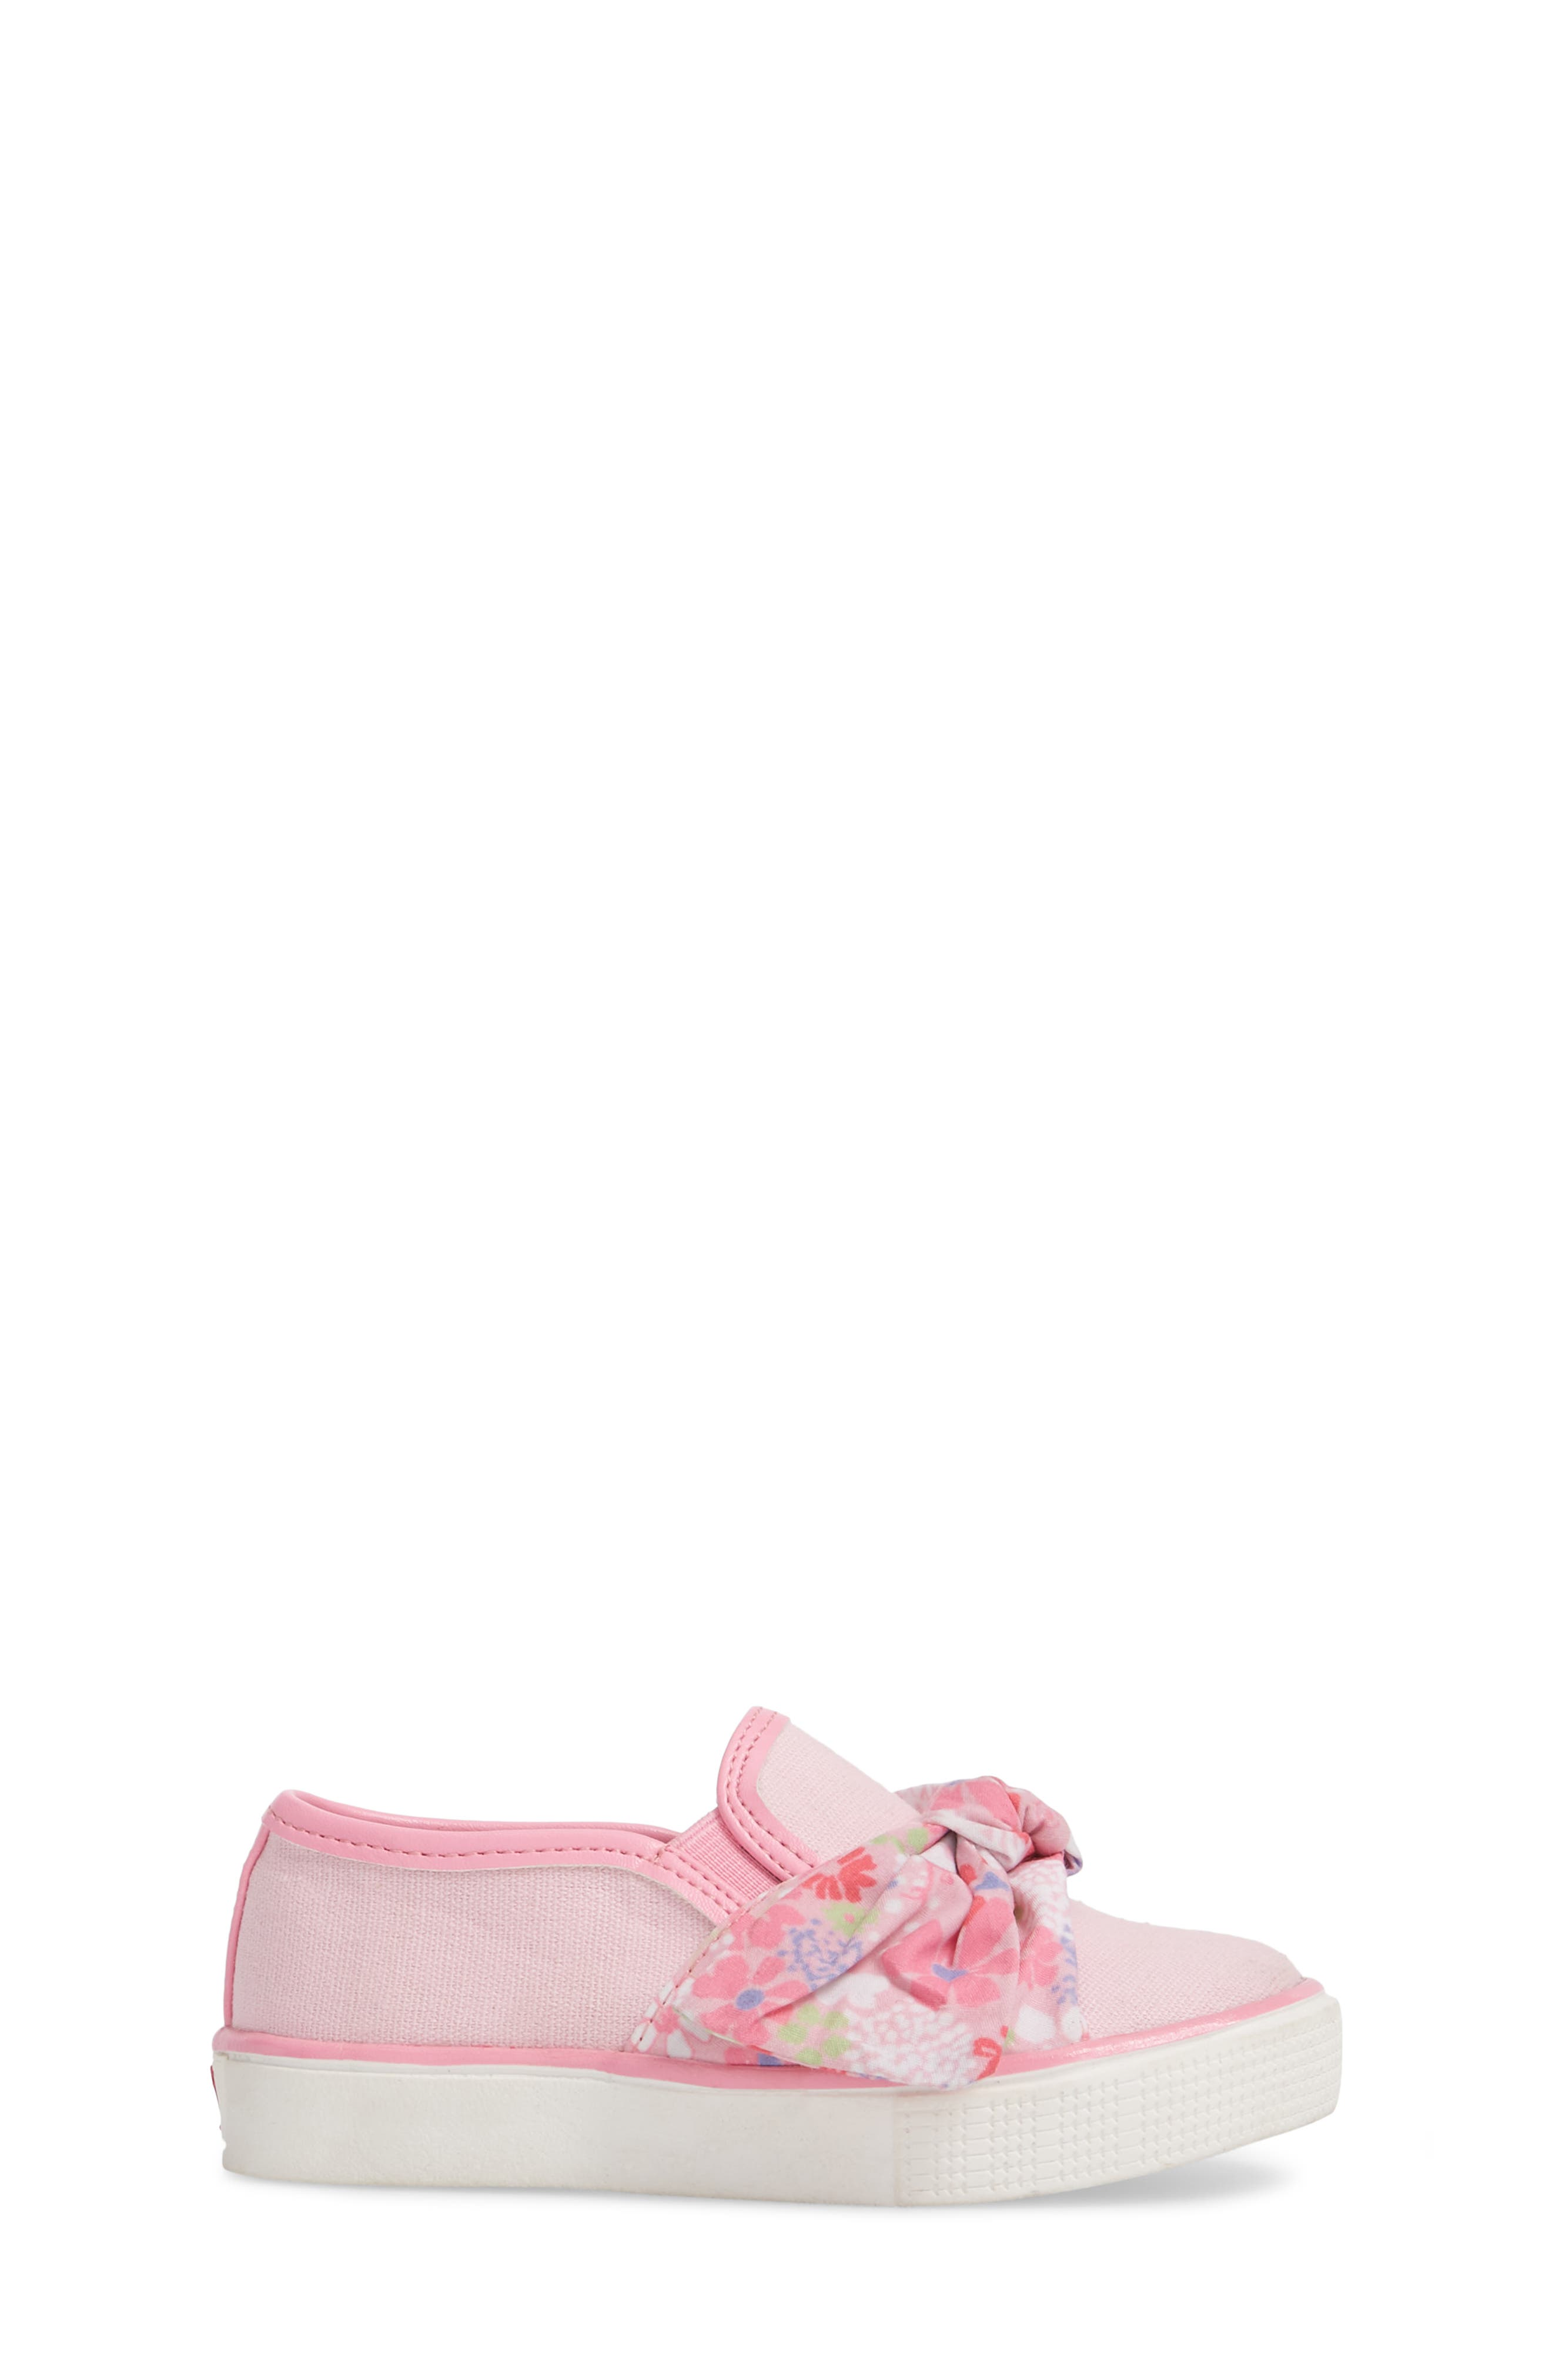 Ashlyn Bow Slip-On Sneaker,                             Alternate thumbnail 4, color,                             Orchid Pink